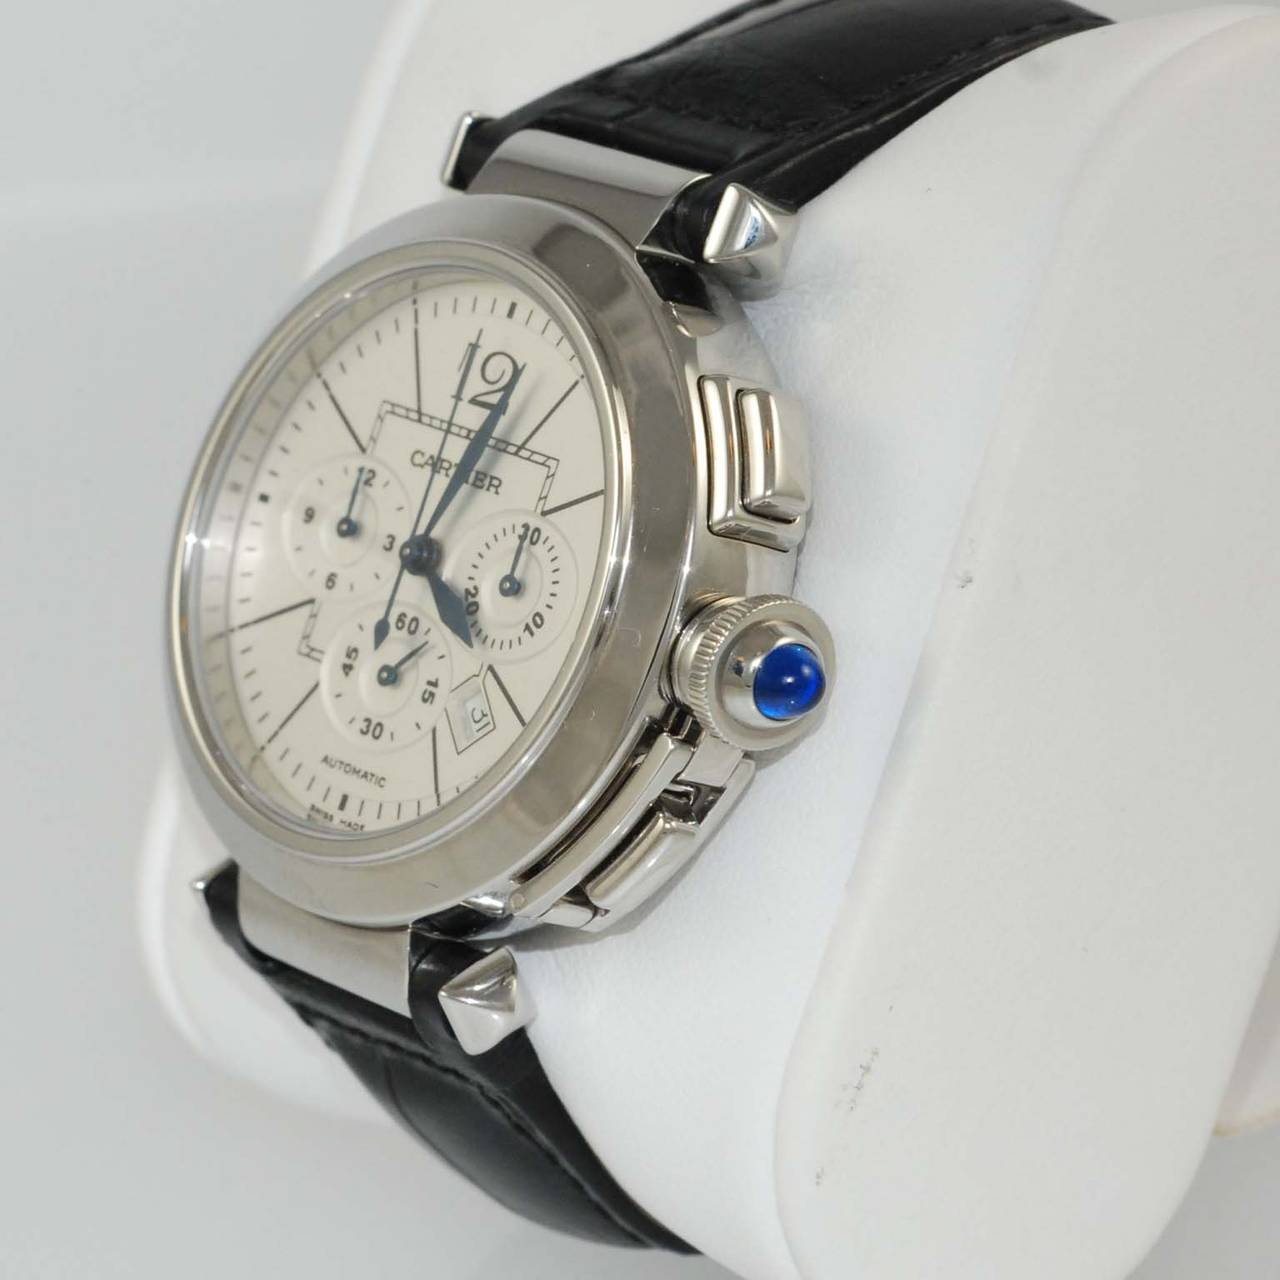 Cartier Stainless Steel Pasha Automatic Chronograph Wristwatch In Excellent Condition For Sale In Chicago, IL